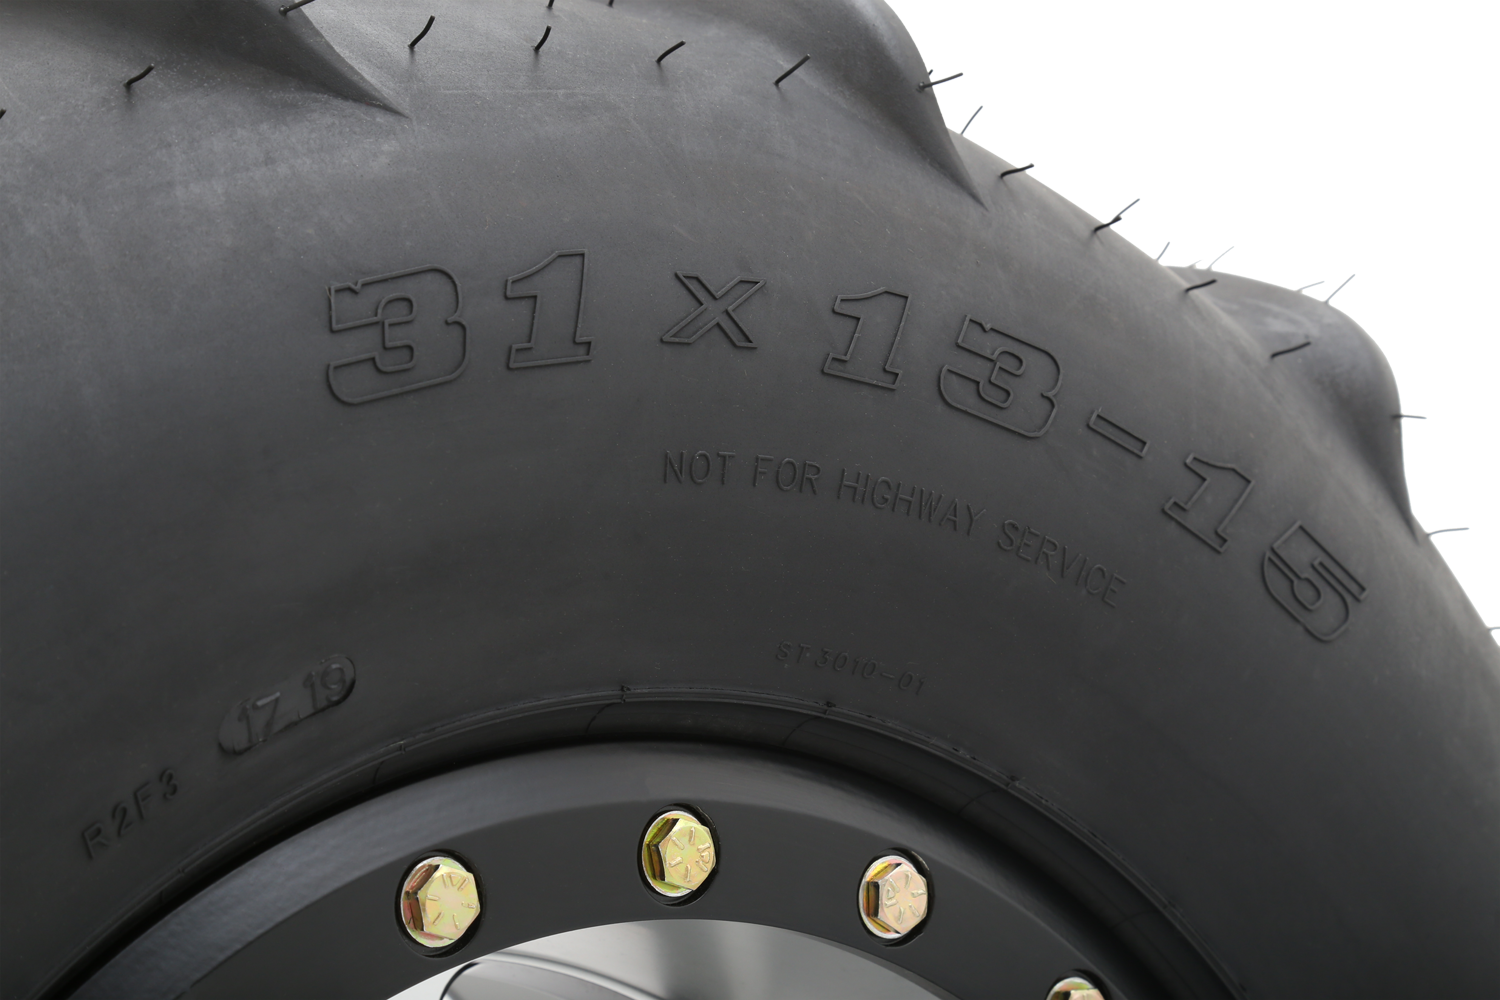 DS340-31-rear-sidewall-1500.png